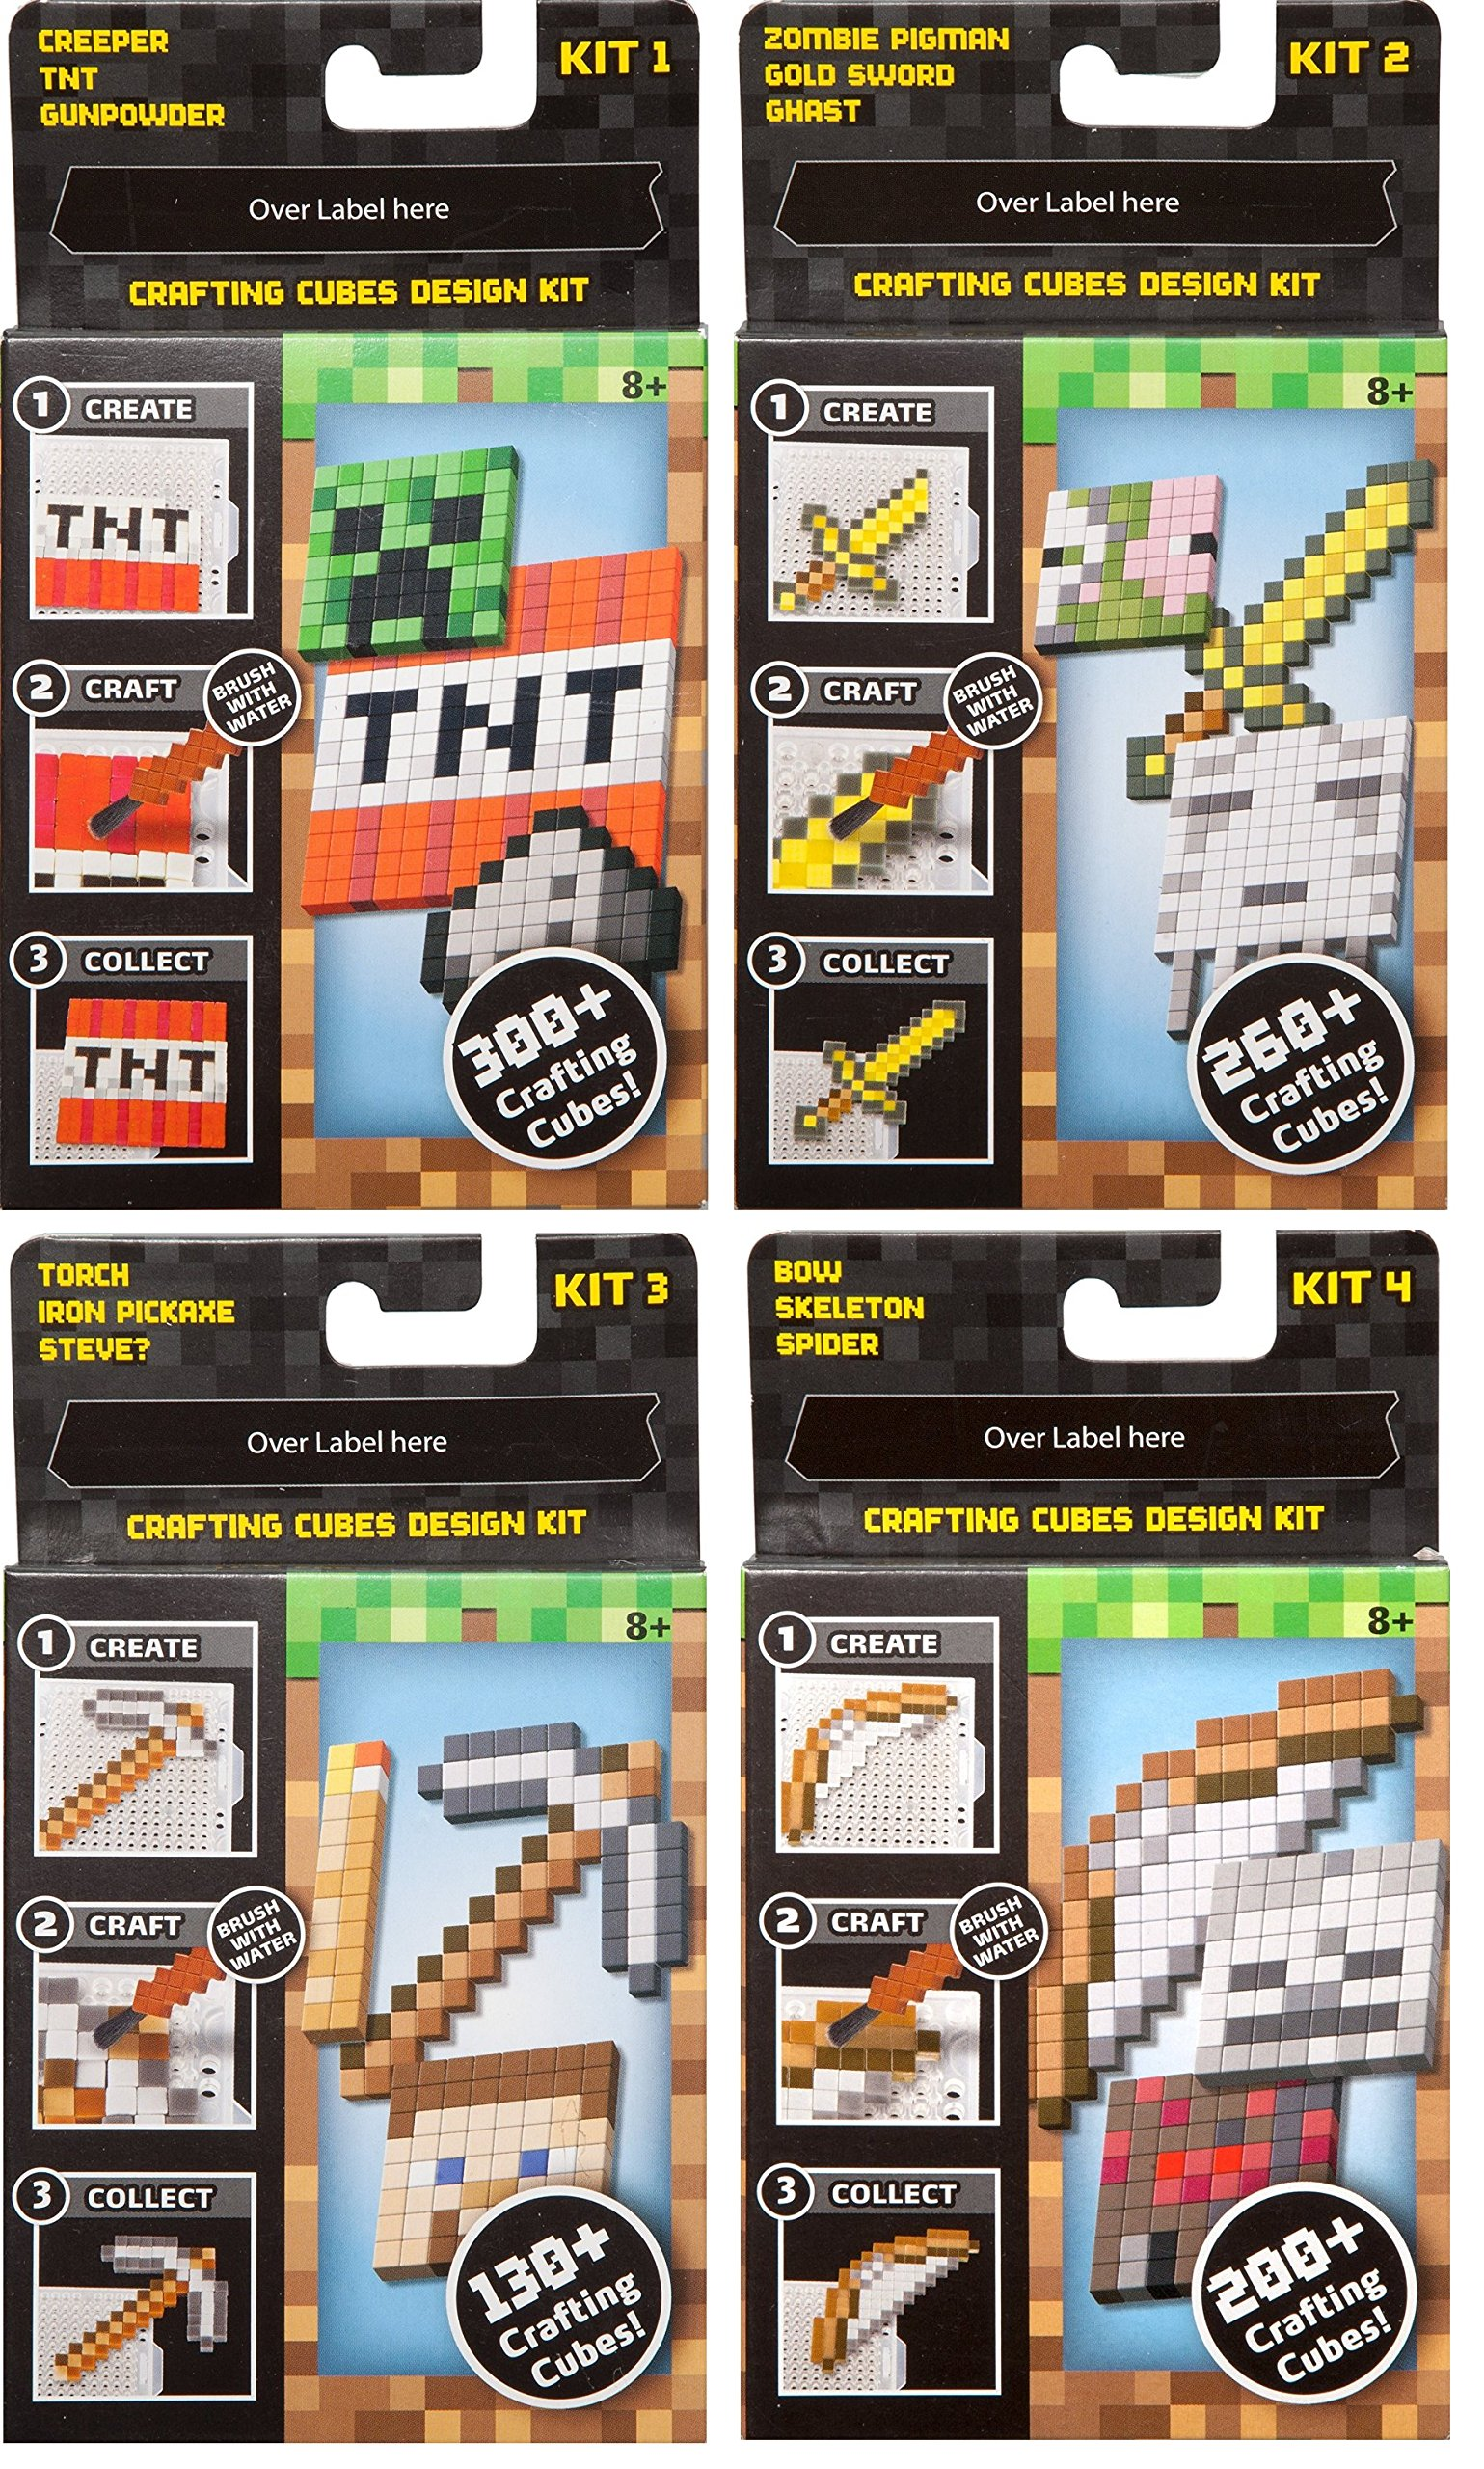 minecraft crafting. Minecraft Crafting Table Refill Collection (4 Packs), With FREE 2-day Domestic Shipping!